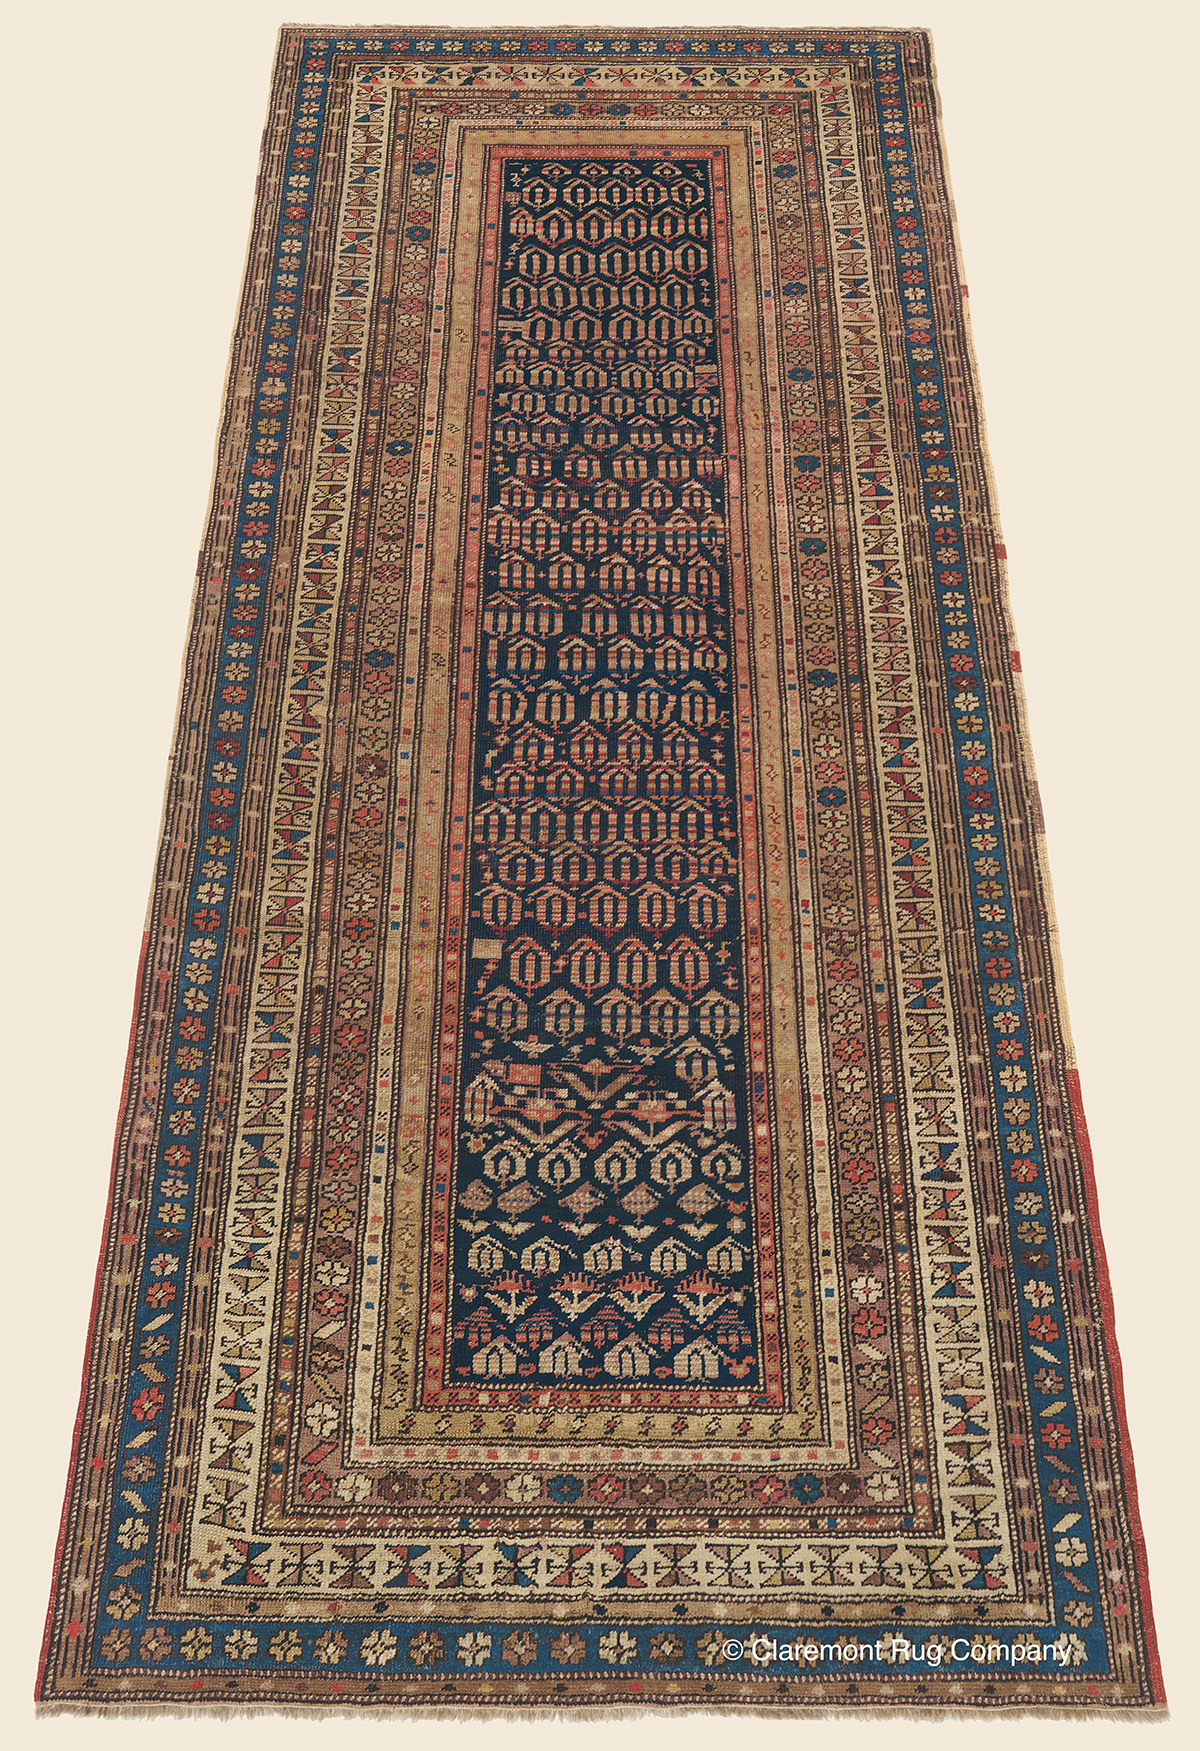 Late 19th century Caucasian Shirvan runner with Boteh design on a midnight indigo reserve